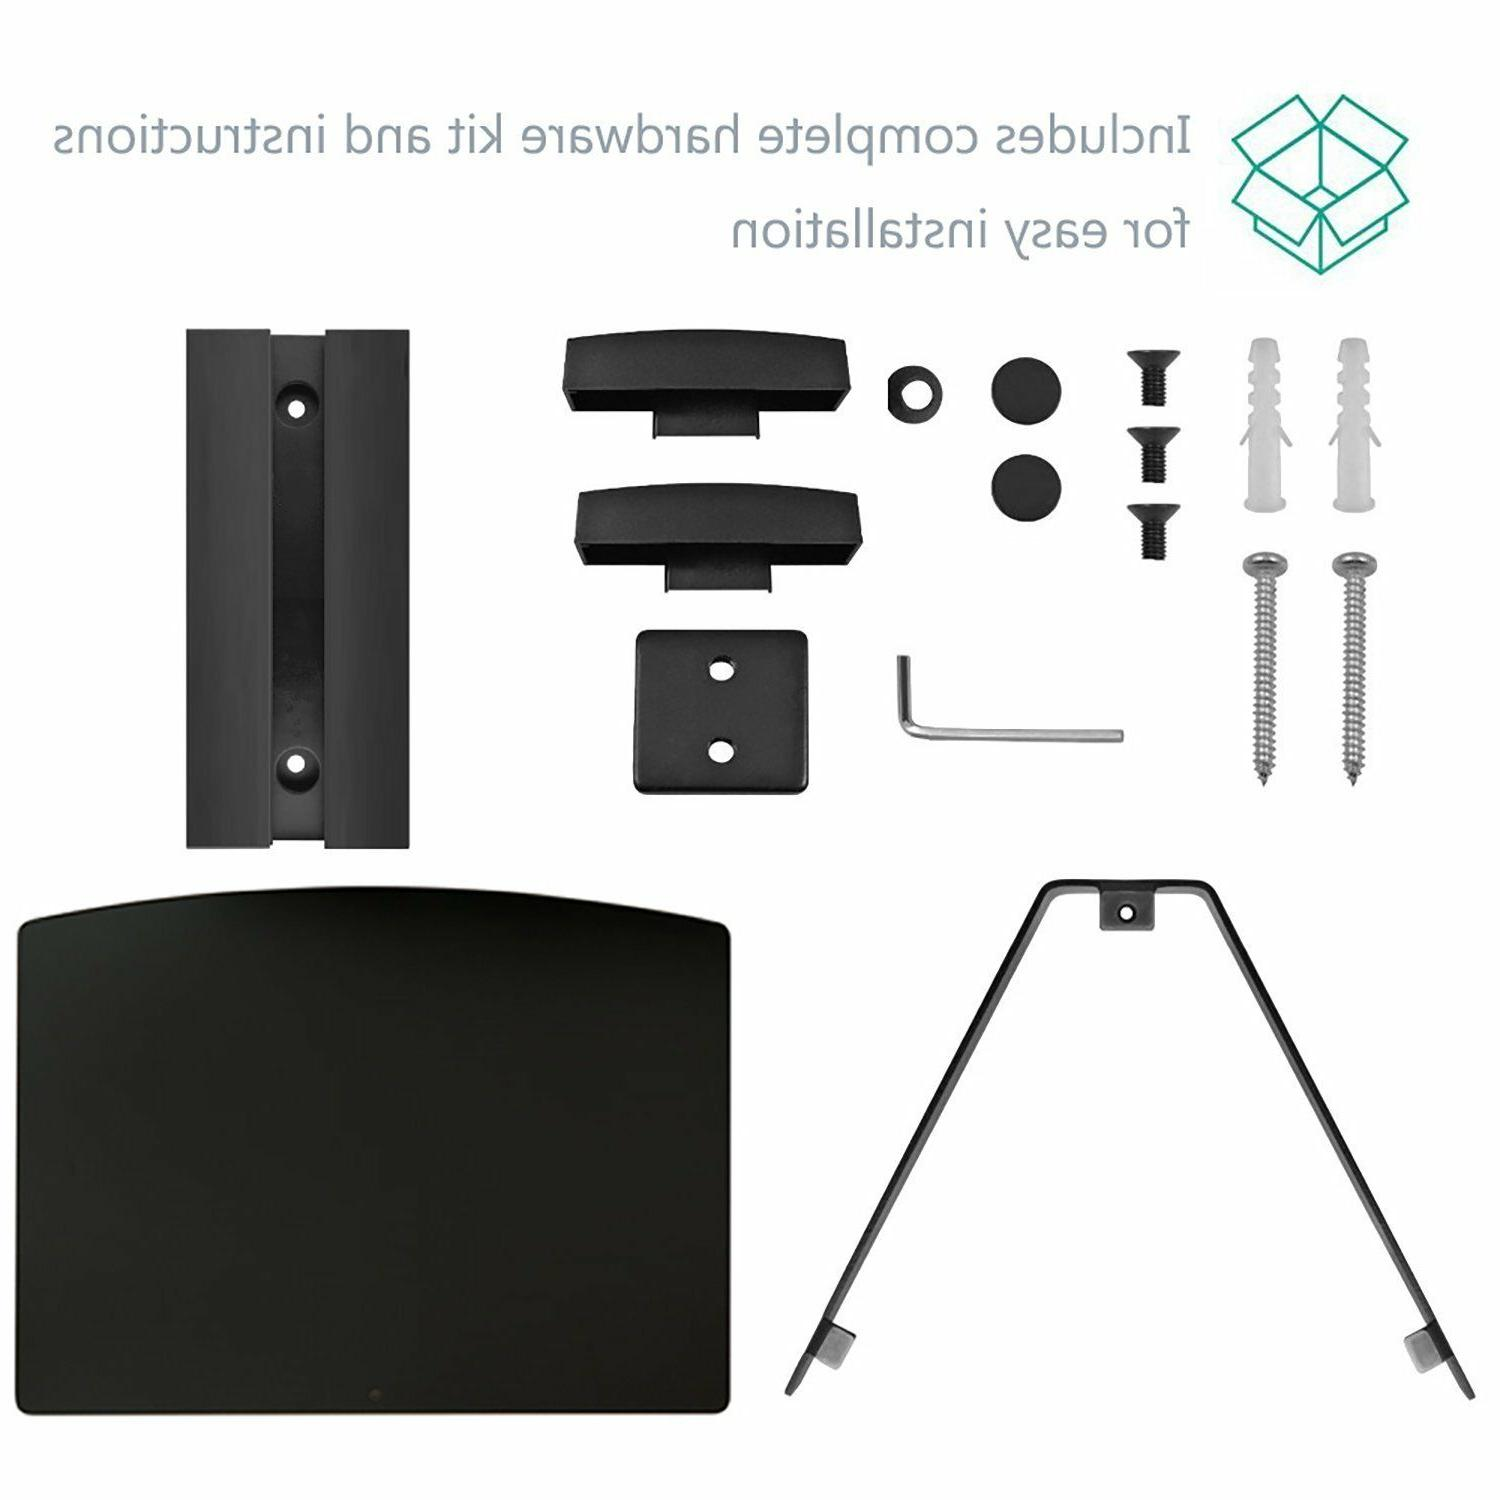 1 Floating Wall Mount TV Home